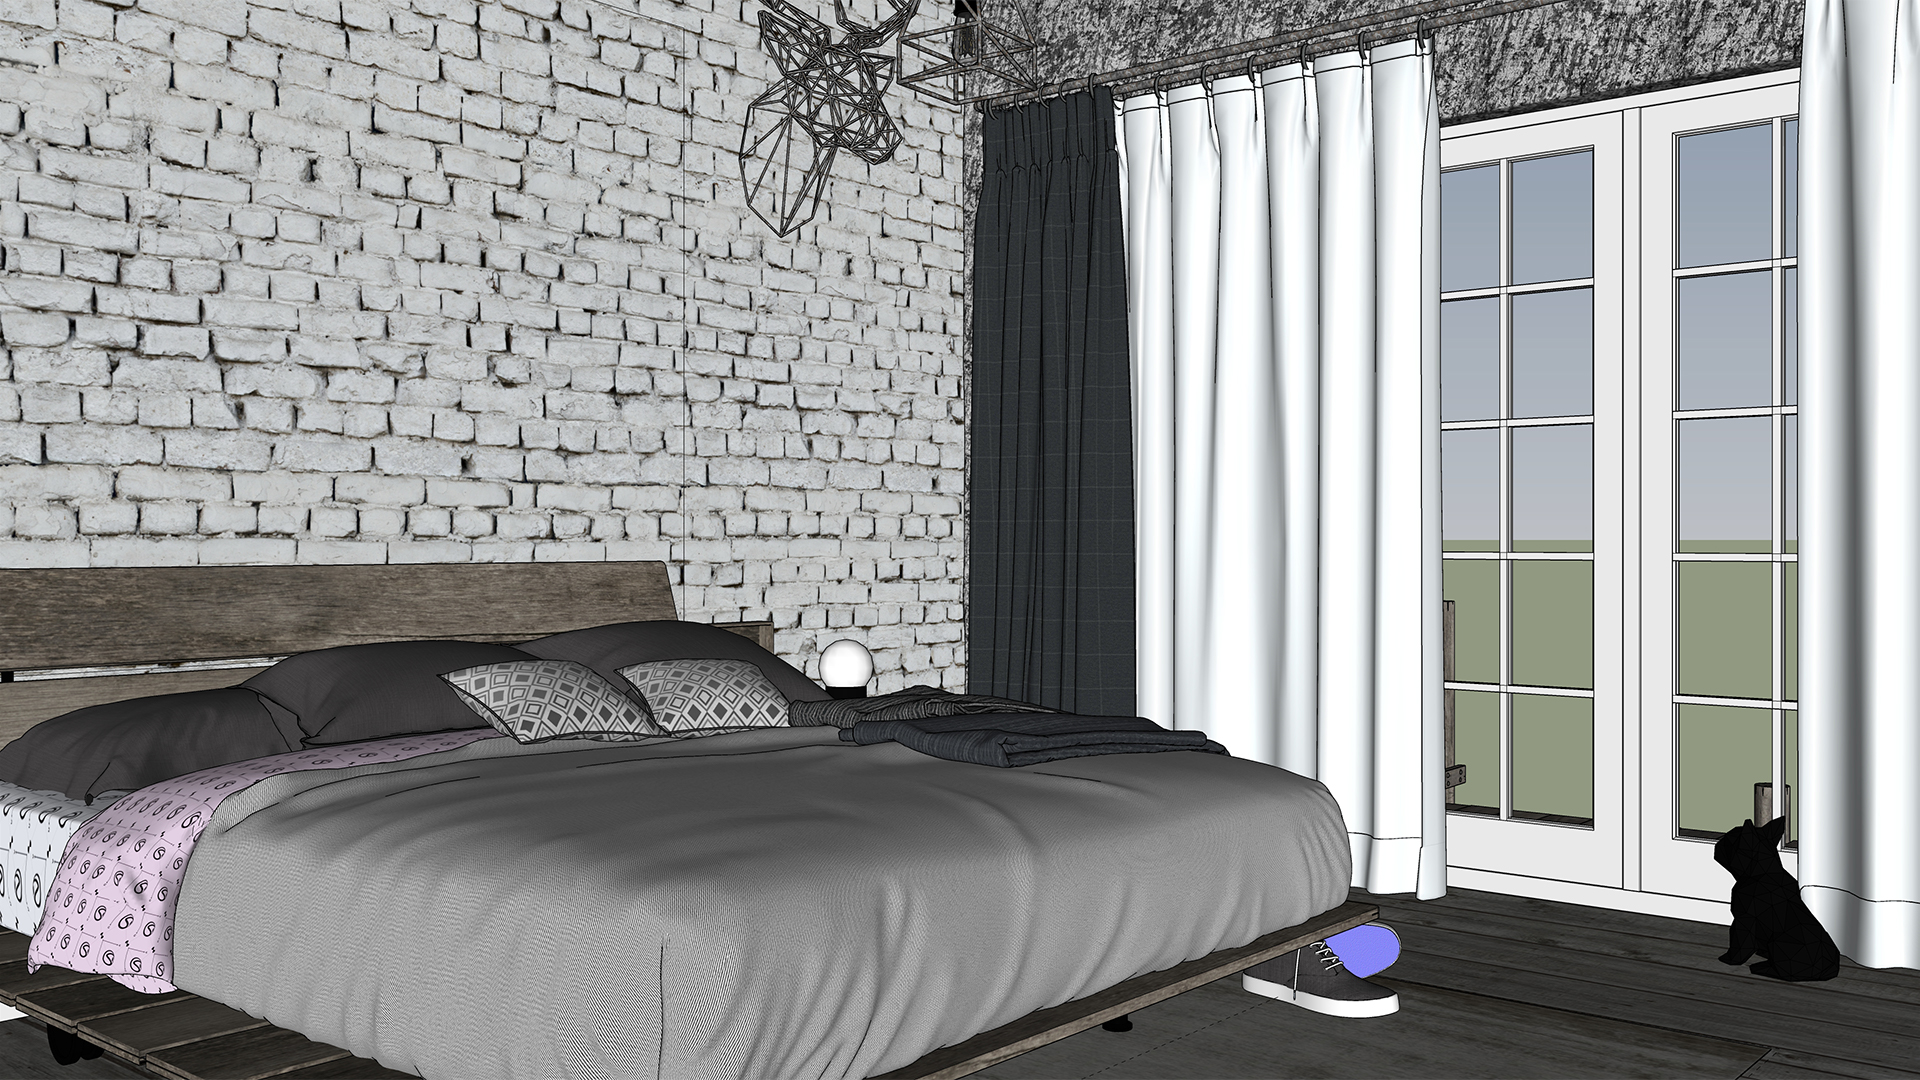 Industrial Bedroom View 1 Night Screenshot 1920.jpg